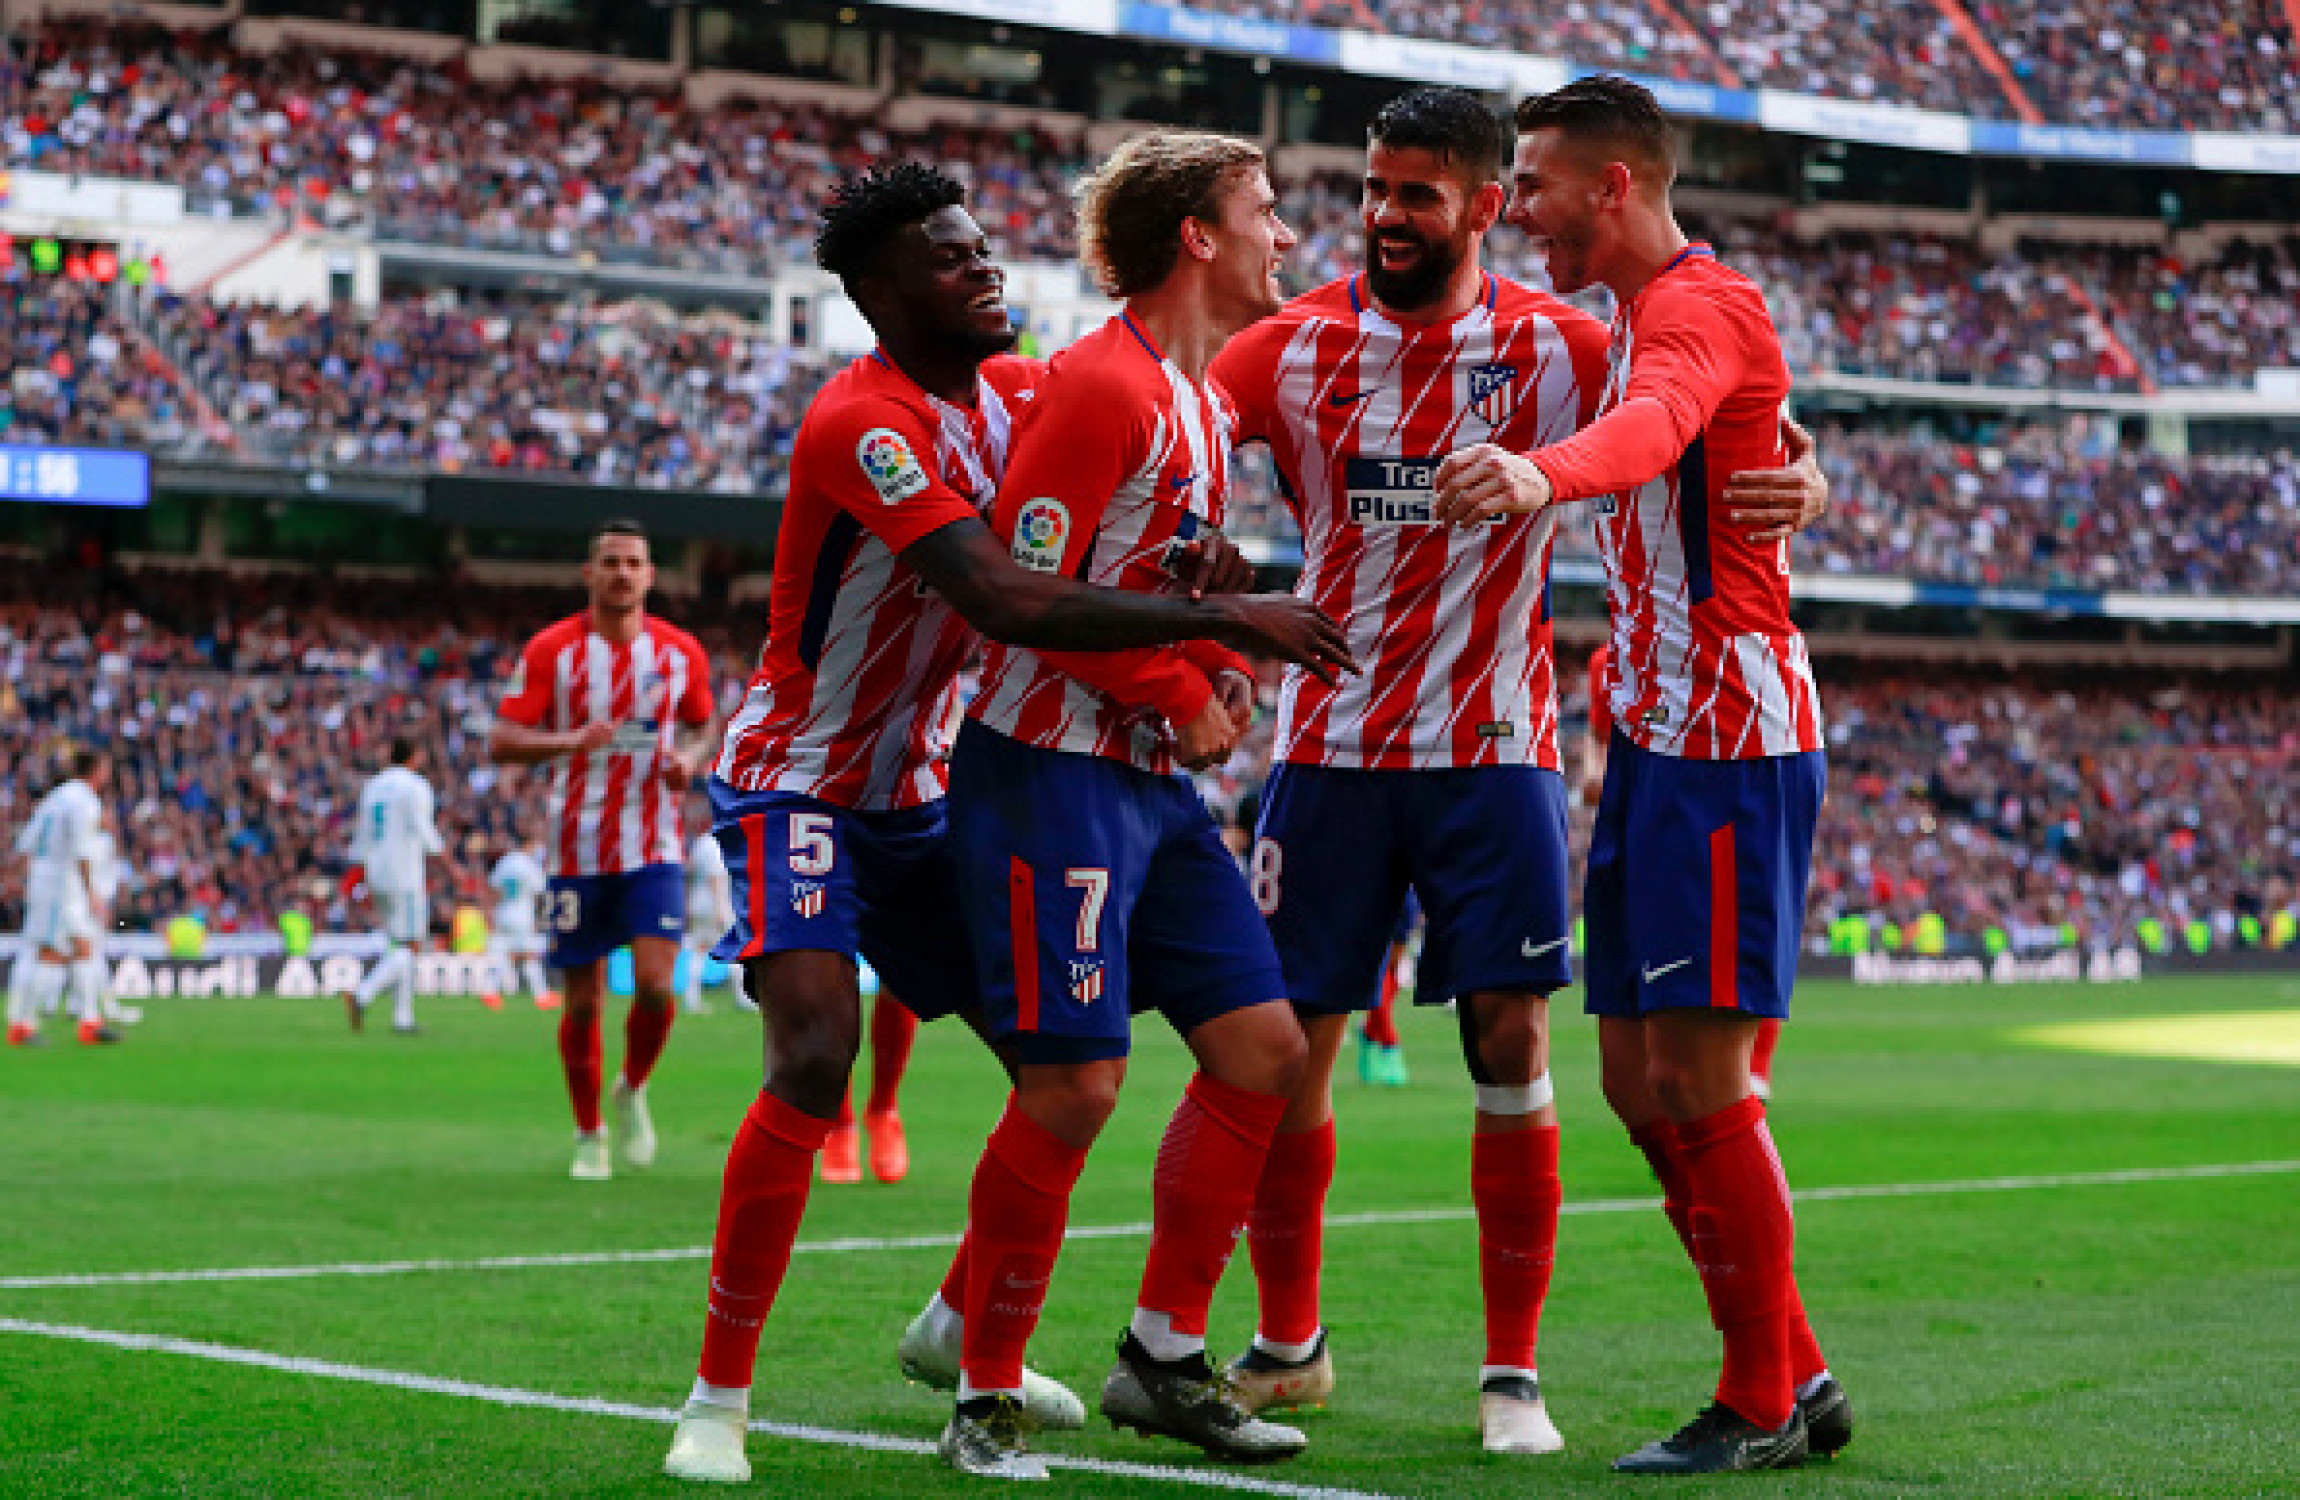 Antoine Griezmann seals point for Atletico from Madrid derby draw